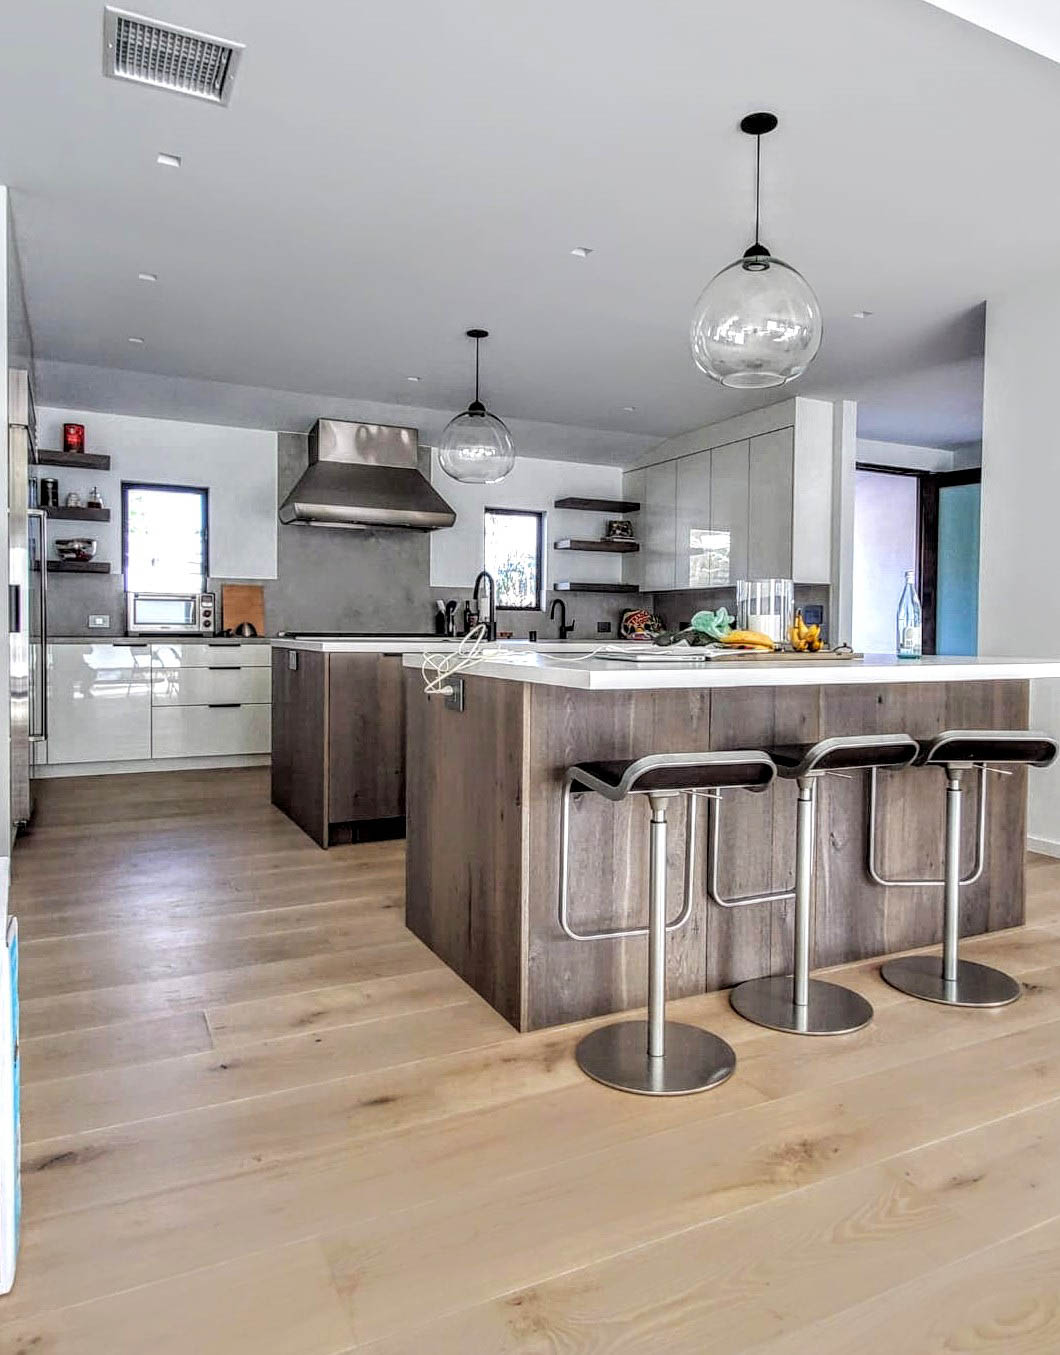 Fitucci Custom Cabinets - Los Angeles - modern looking kitchen island with custom built lower part. the chairs have no arms rests